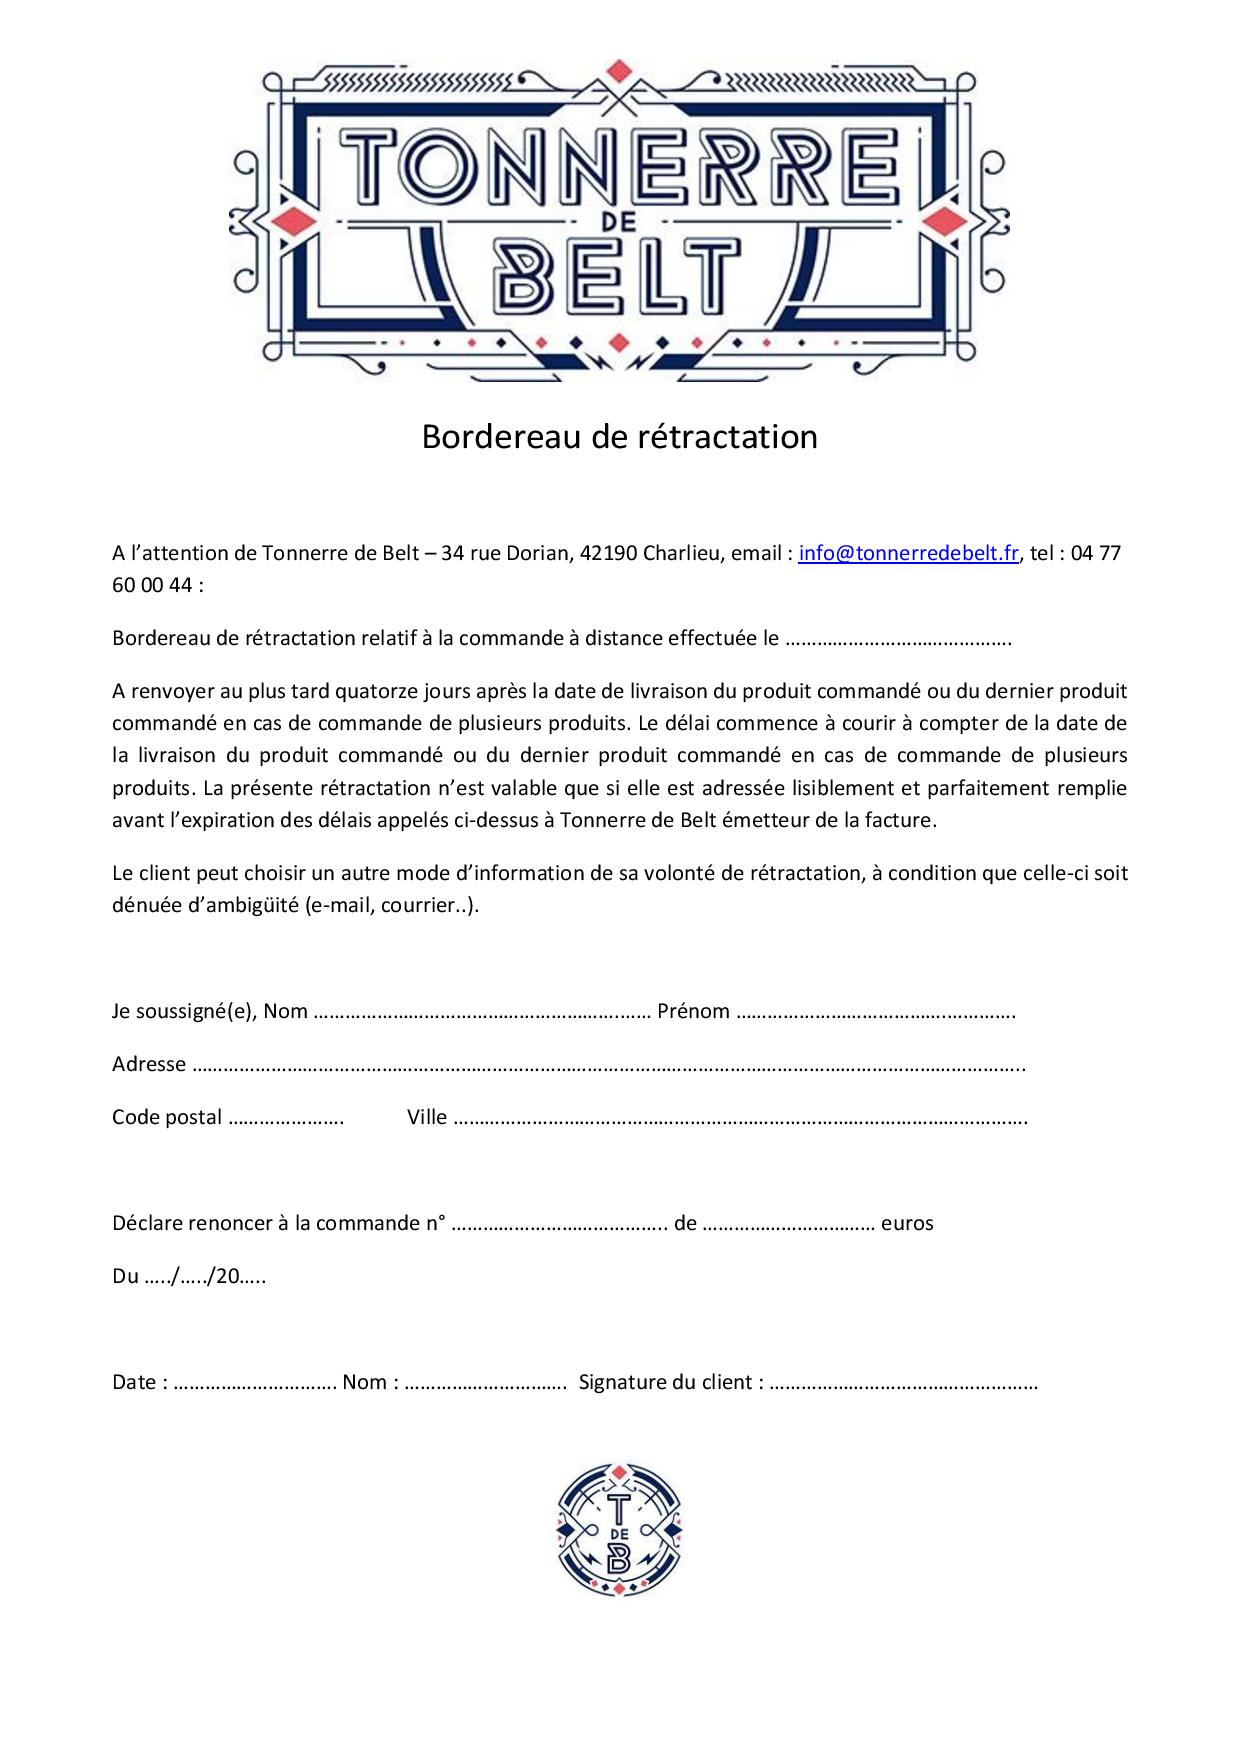 bordereau de rétractation tonnerre de belt